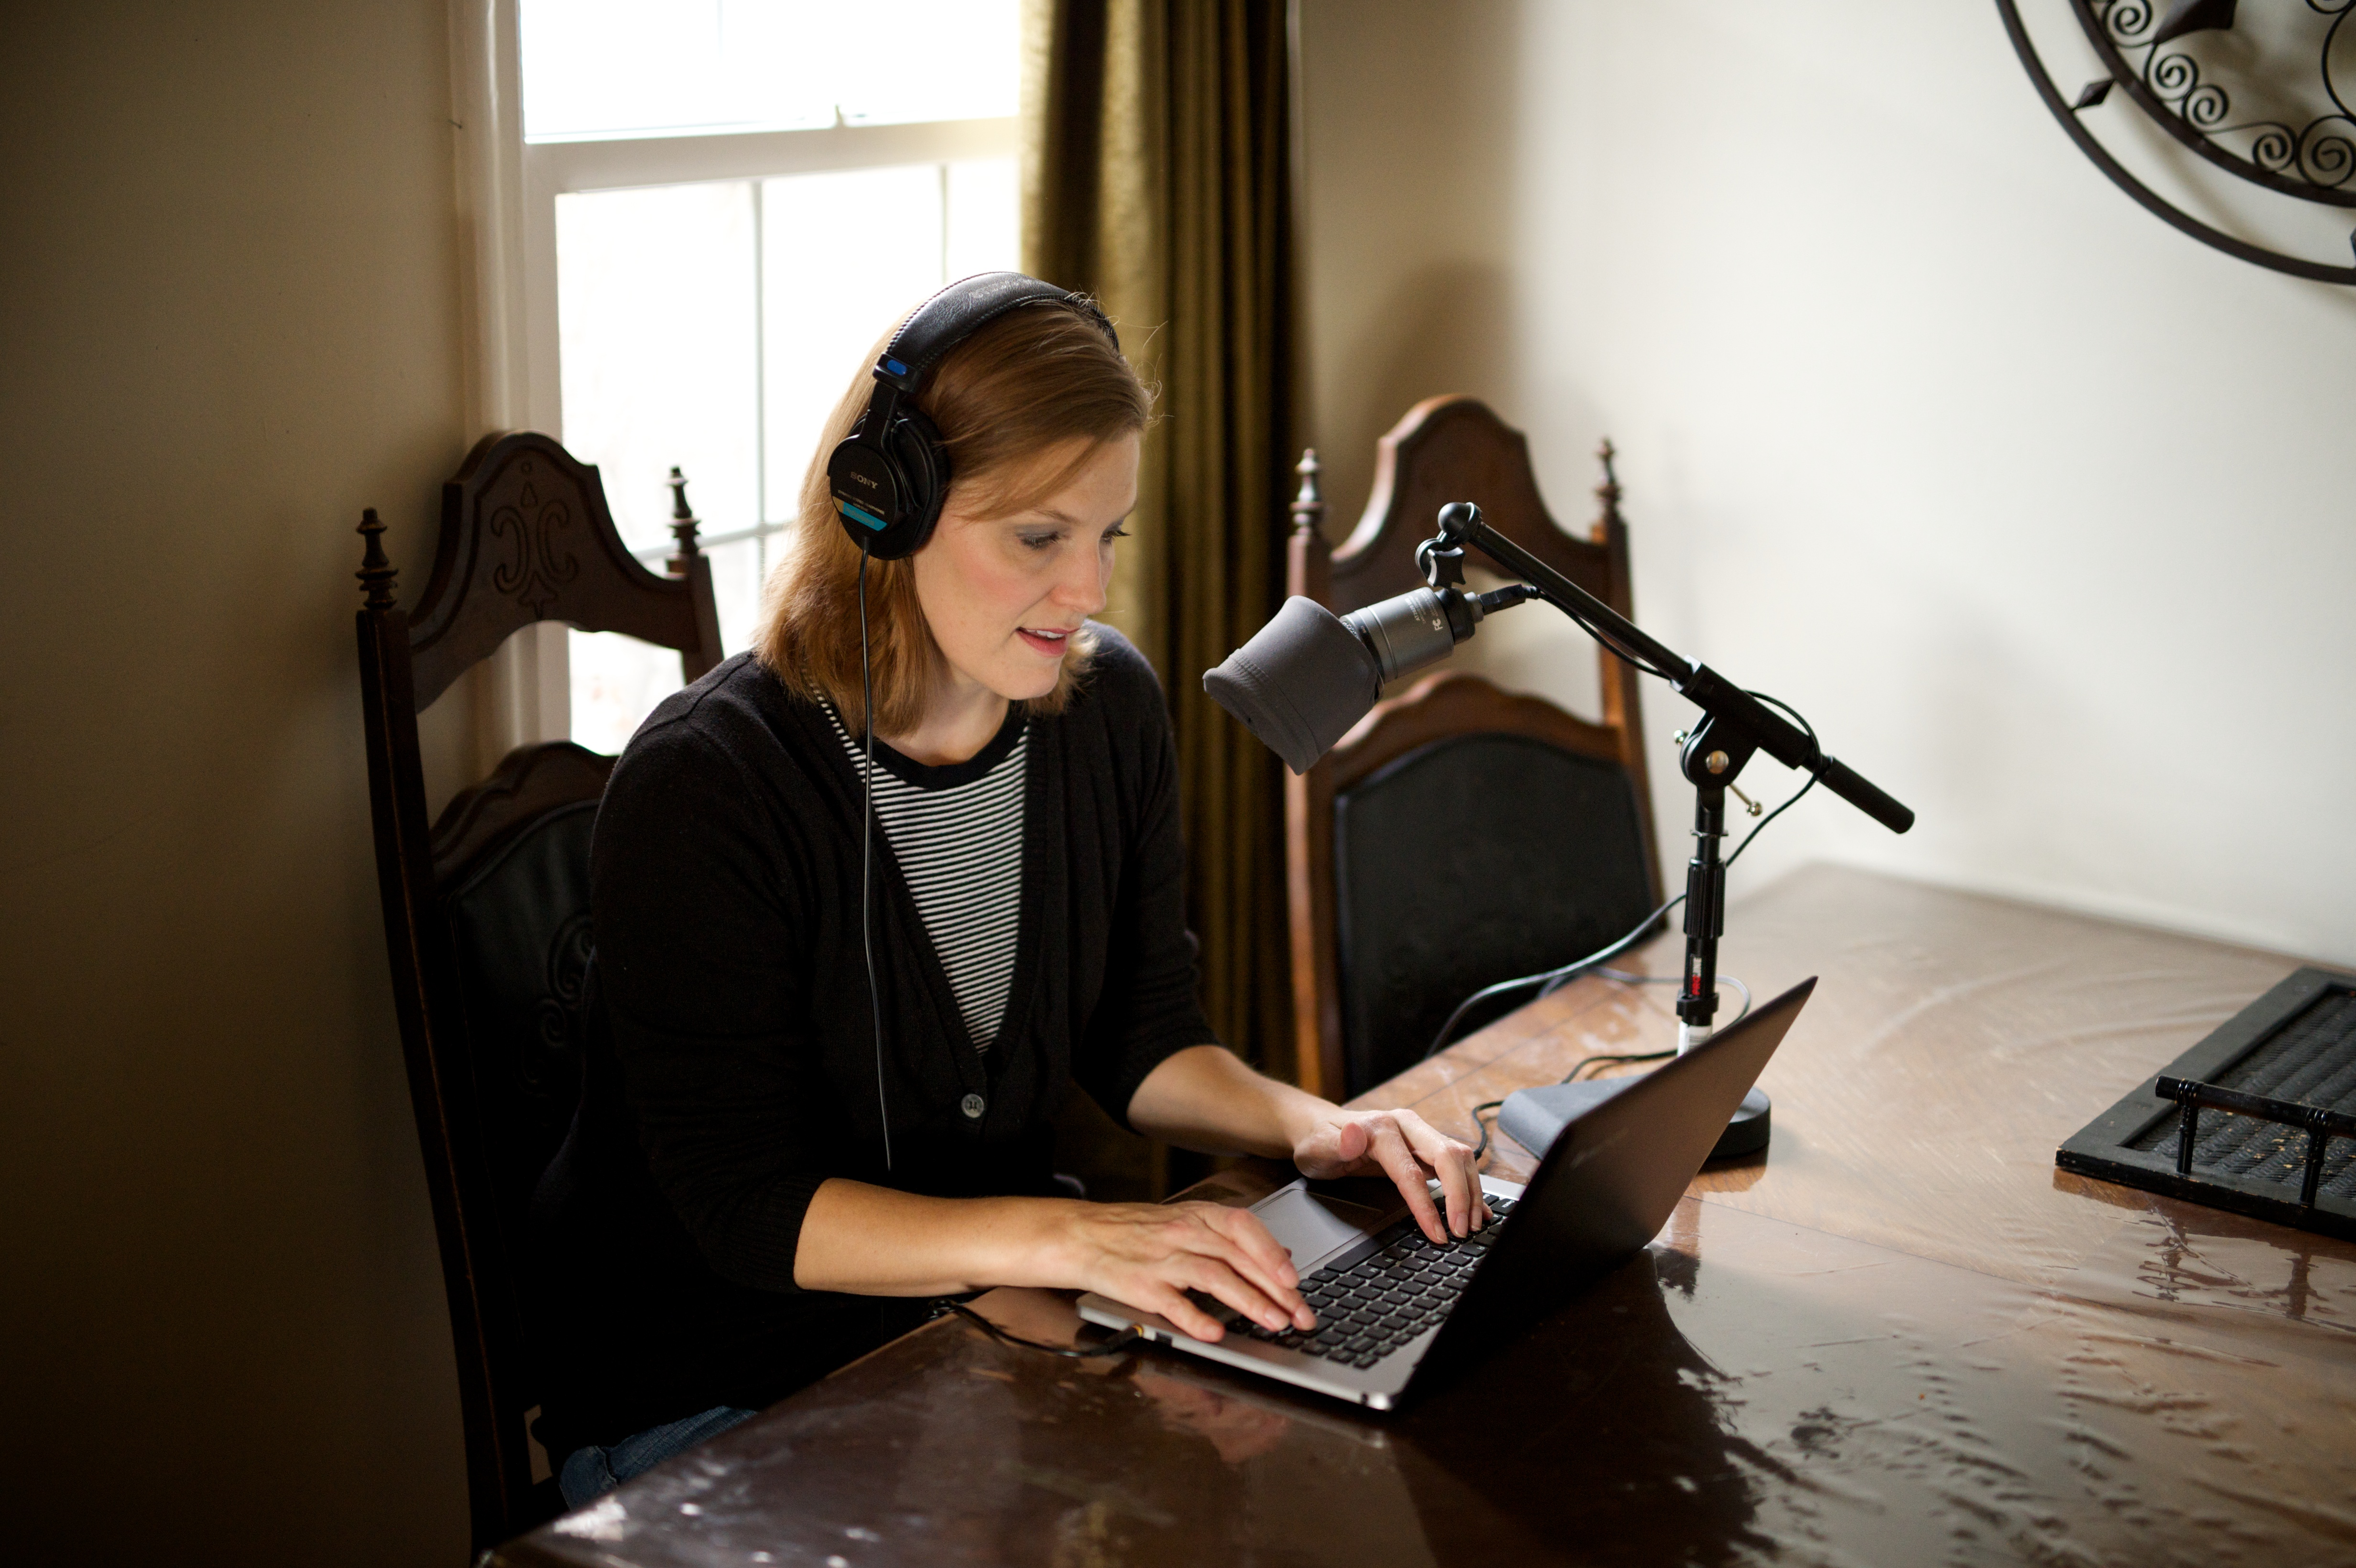 Audio recordings of scripture translations for the Church used to be done in a professional studio. They can now be done at the homes of individual voice talents commissioned by the Church.